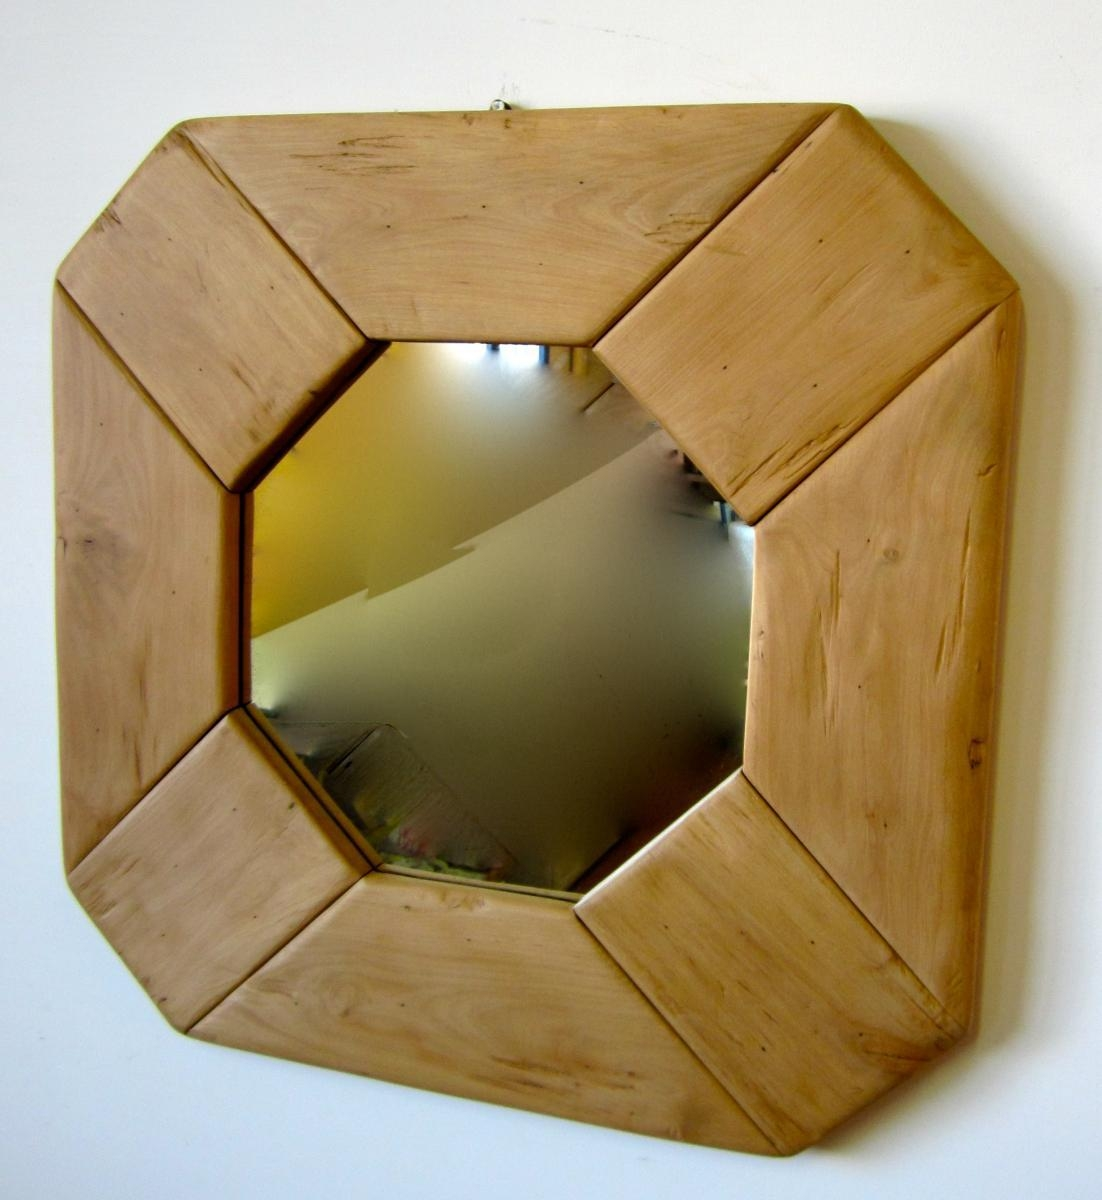 Vintage Italian Wooden Mirror, 1970S For Sale At Pamono Intended For Wooden Mirror (Image 11 of 20)